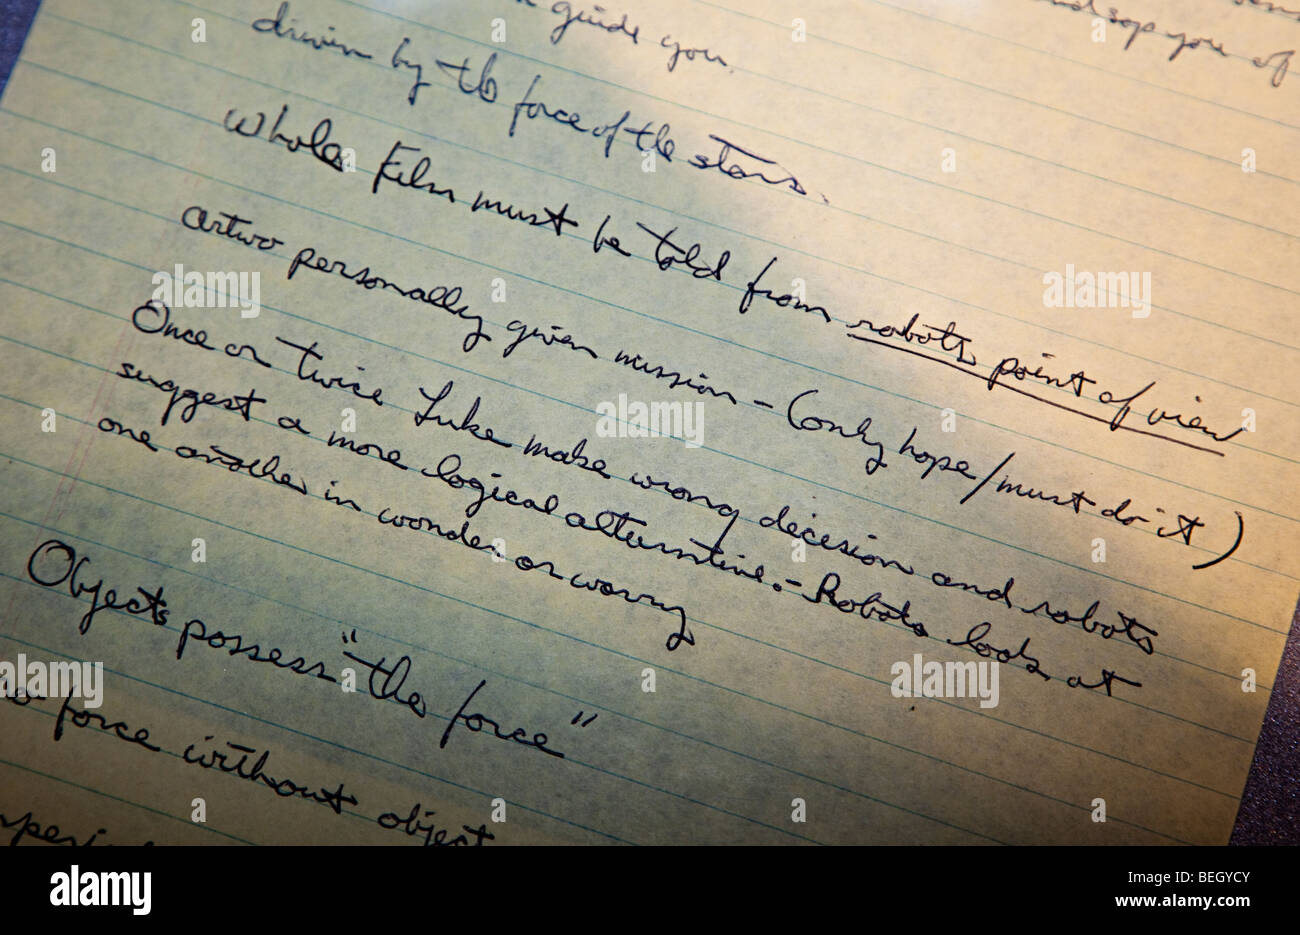 Original early George Lucas story script for Star Wars on display at NASA Space Center Houston Texas USA - Stock Image